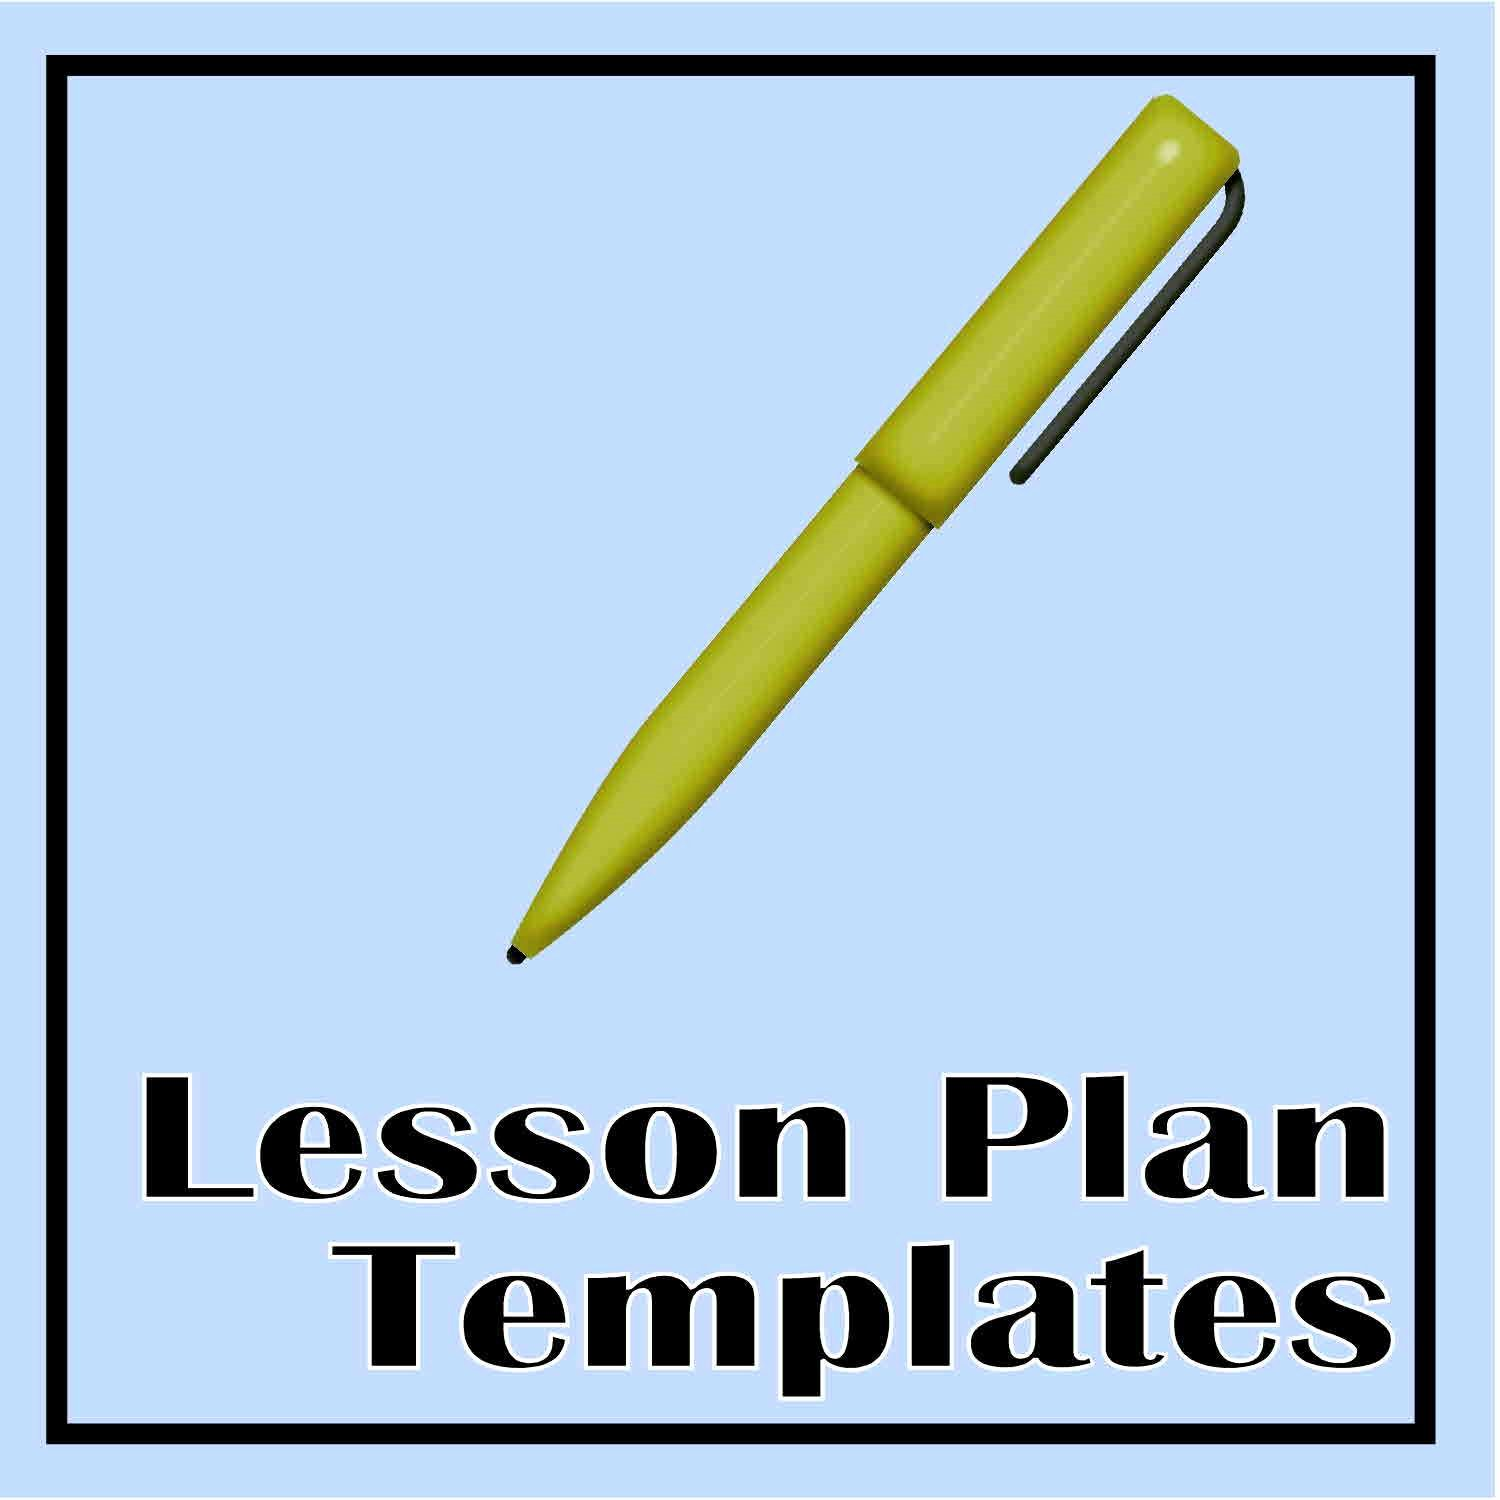 Lesson Plan Template Word Doc Awesome Lesson Plan Templates the Curriculum Corner 123